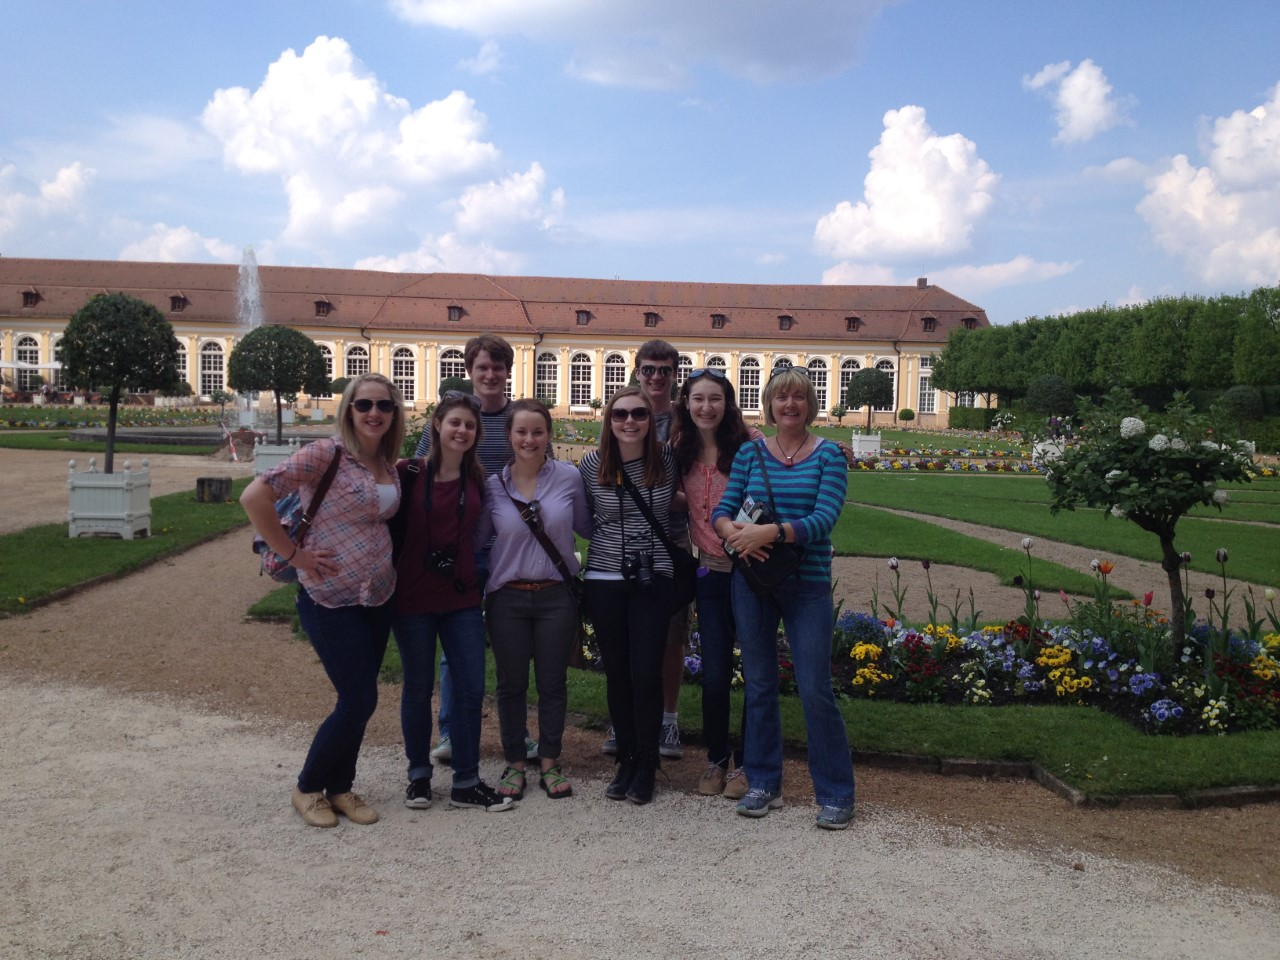 Professor Susanne Taylor with students in Ansbach, Germany during spring term 2016